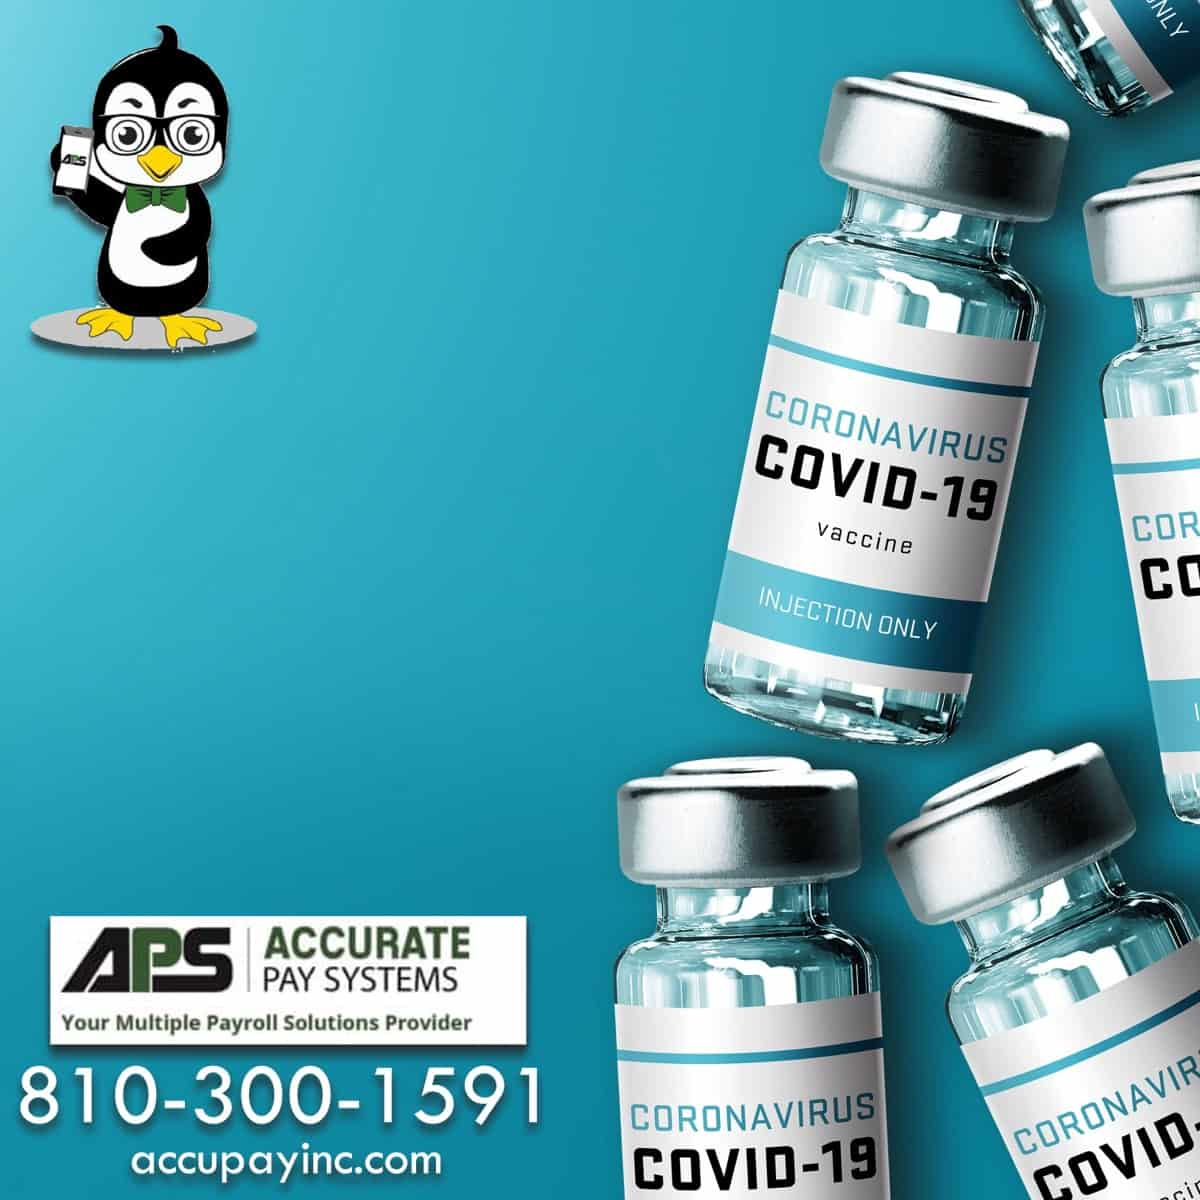 COVID-19 Vaccine - Accurate Pay Systems